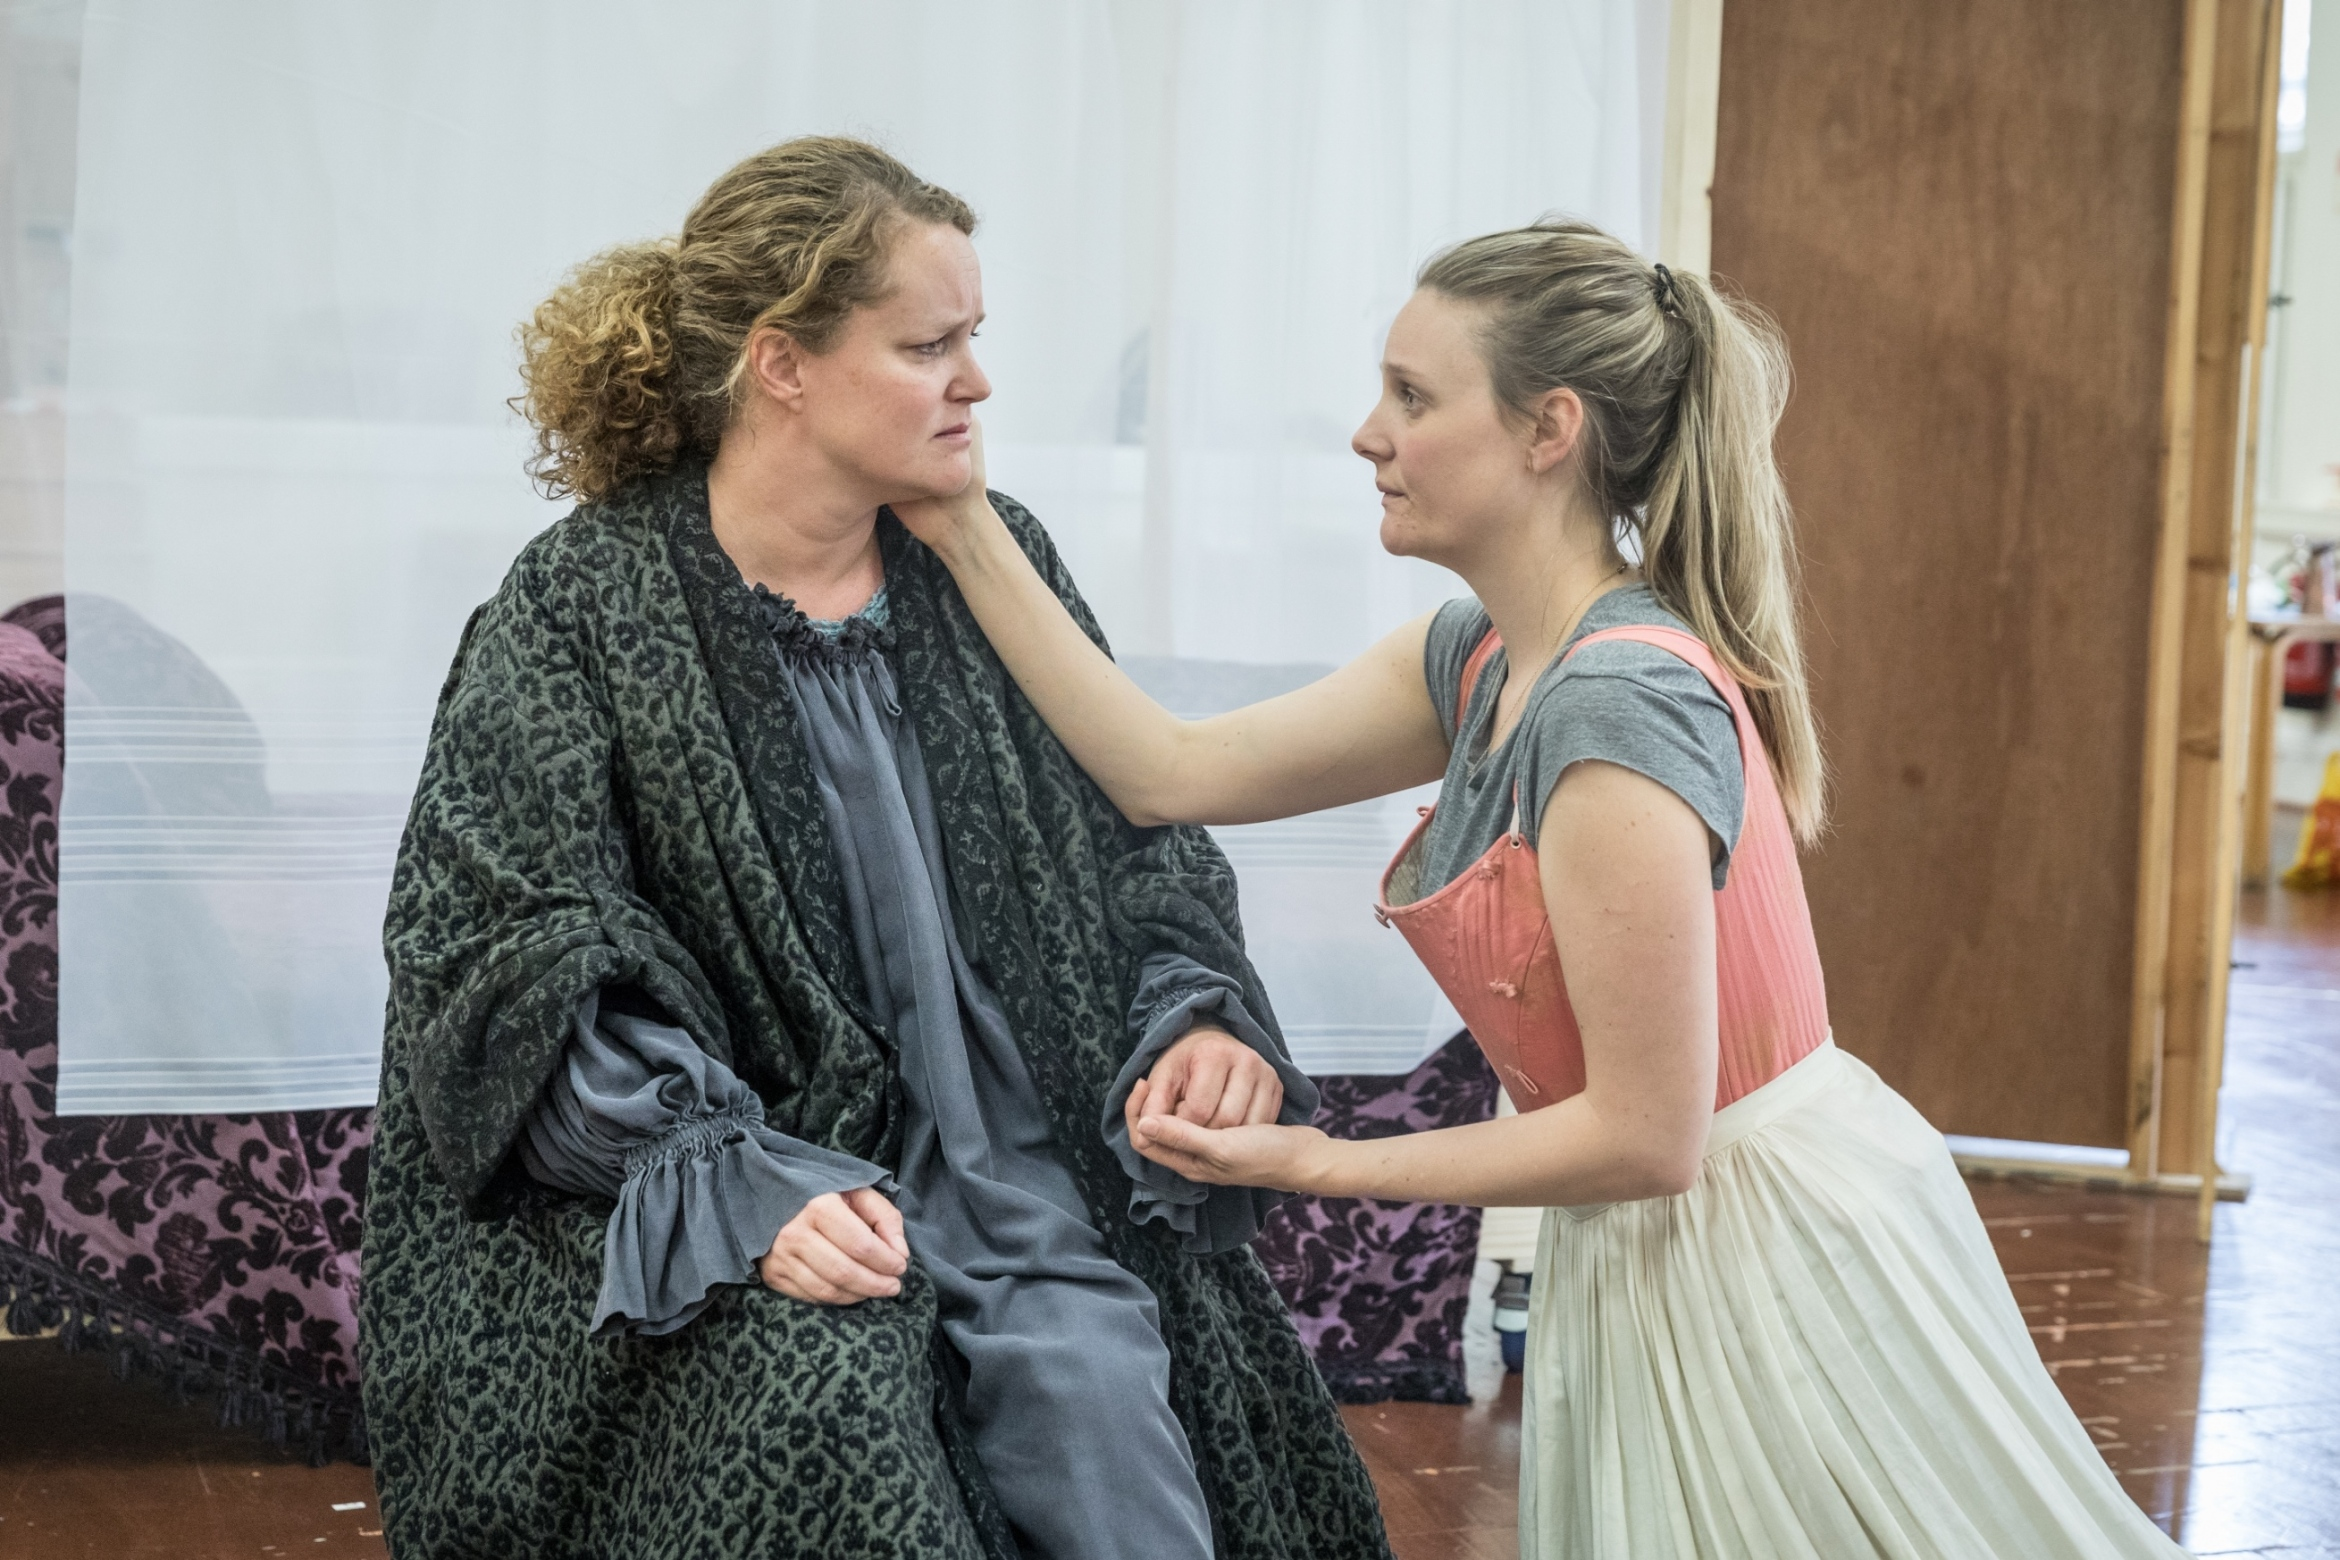 Emma Cunniffe as Queen Anne and Romola Garai as Sarah Duchess of Marlborough in rehearsals for Queen Anne. Credit Marc Brenner